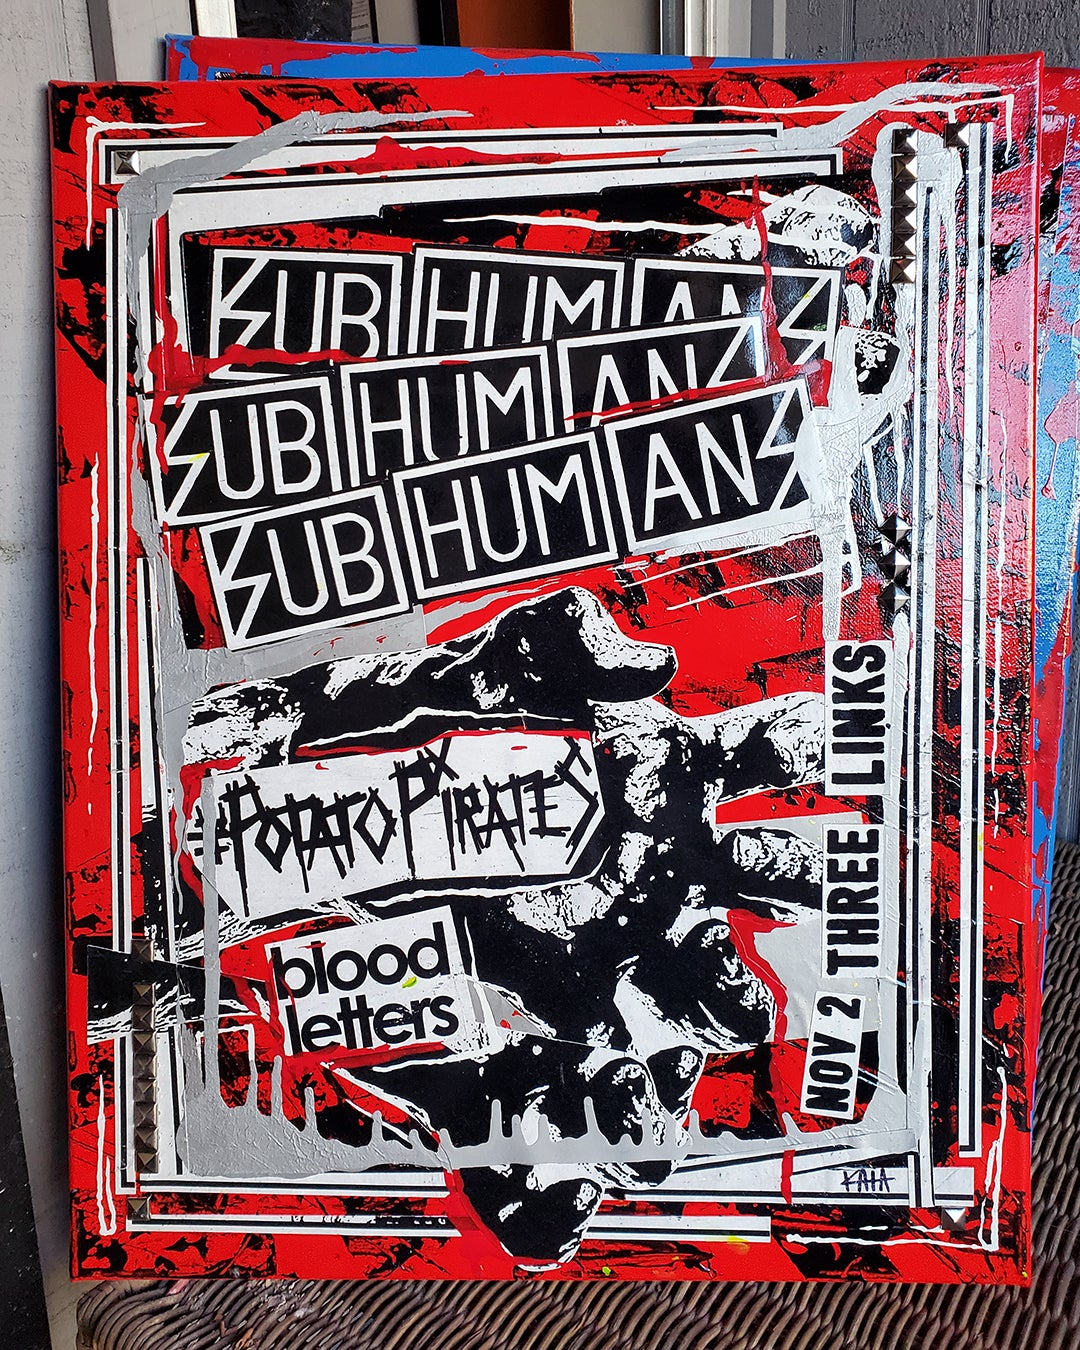 Subhumans 2015 (16x20 canvas)